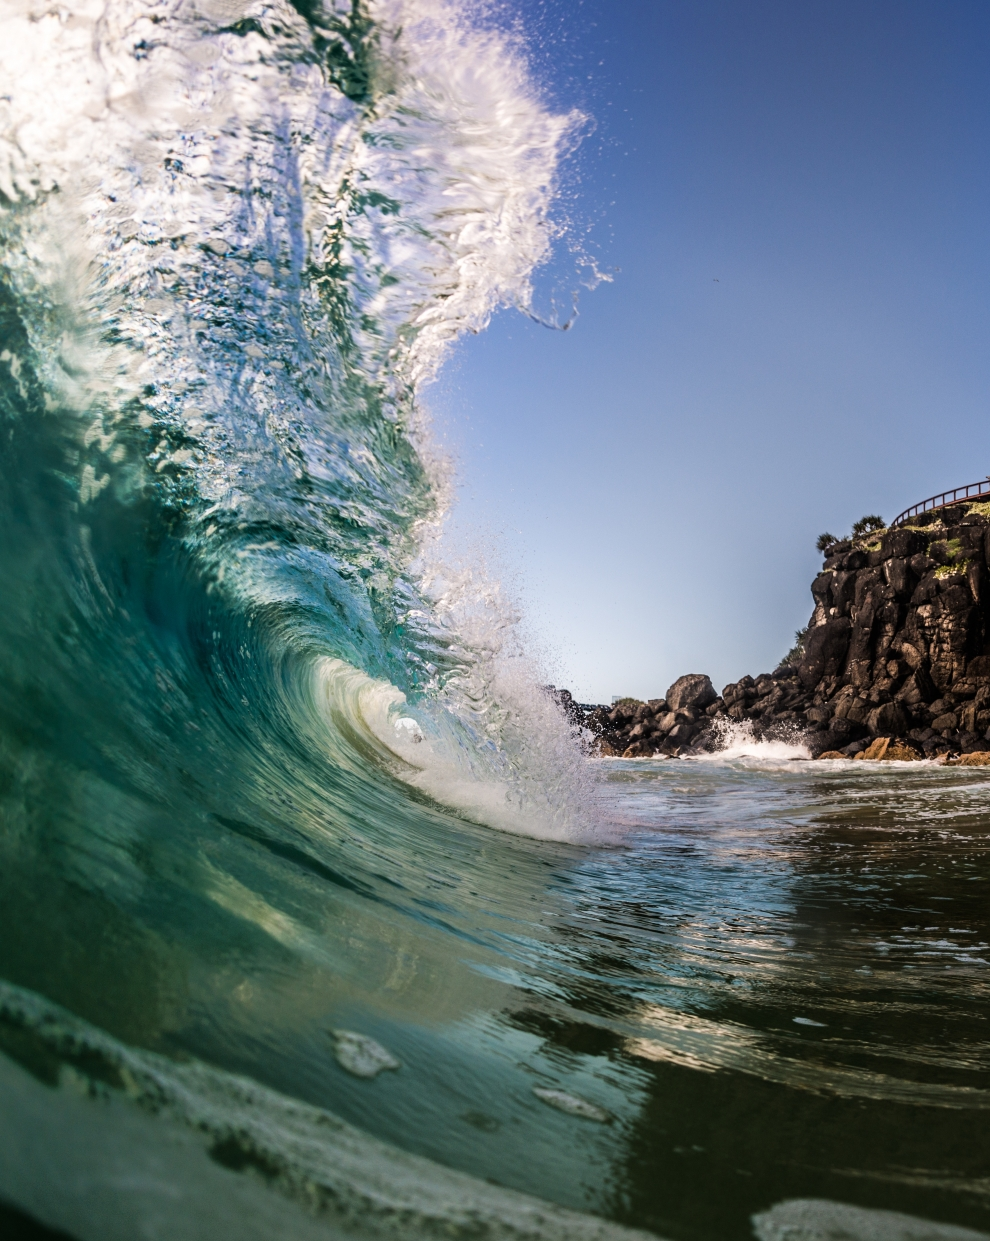 MonteRegoPhotography's photo of Snapper Rocks